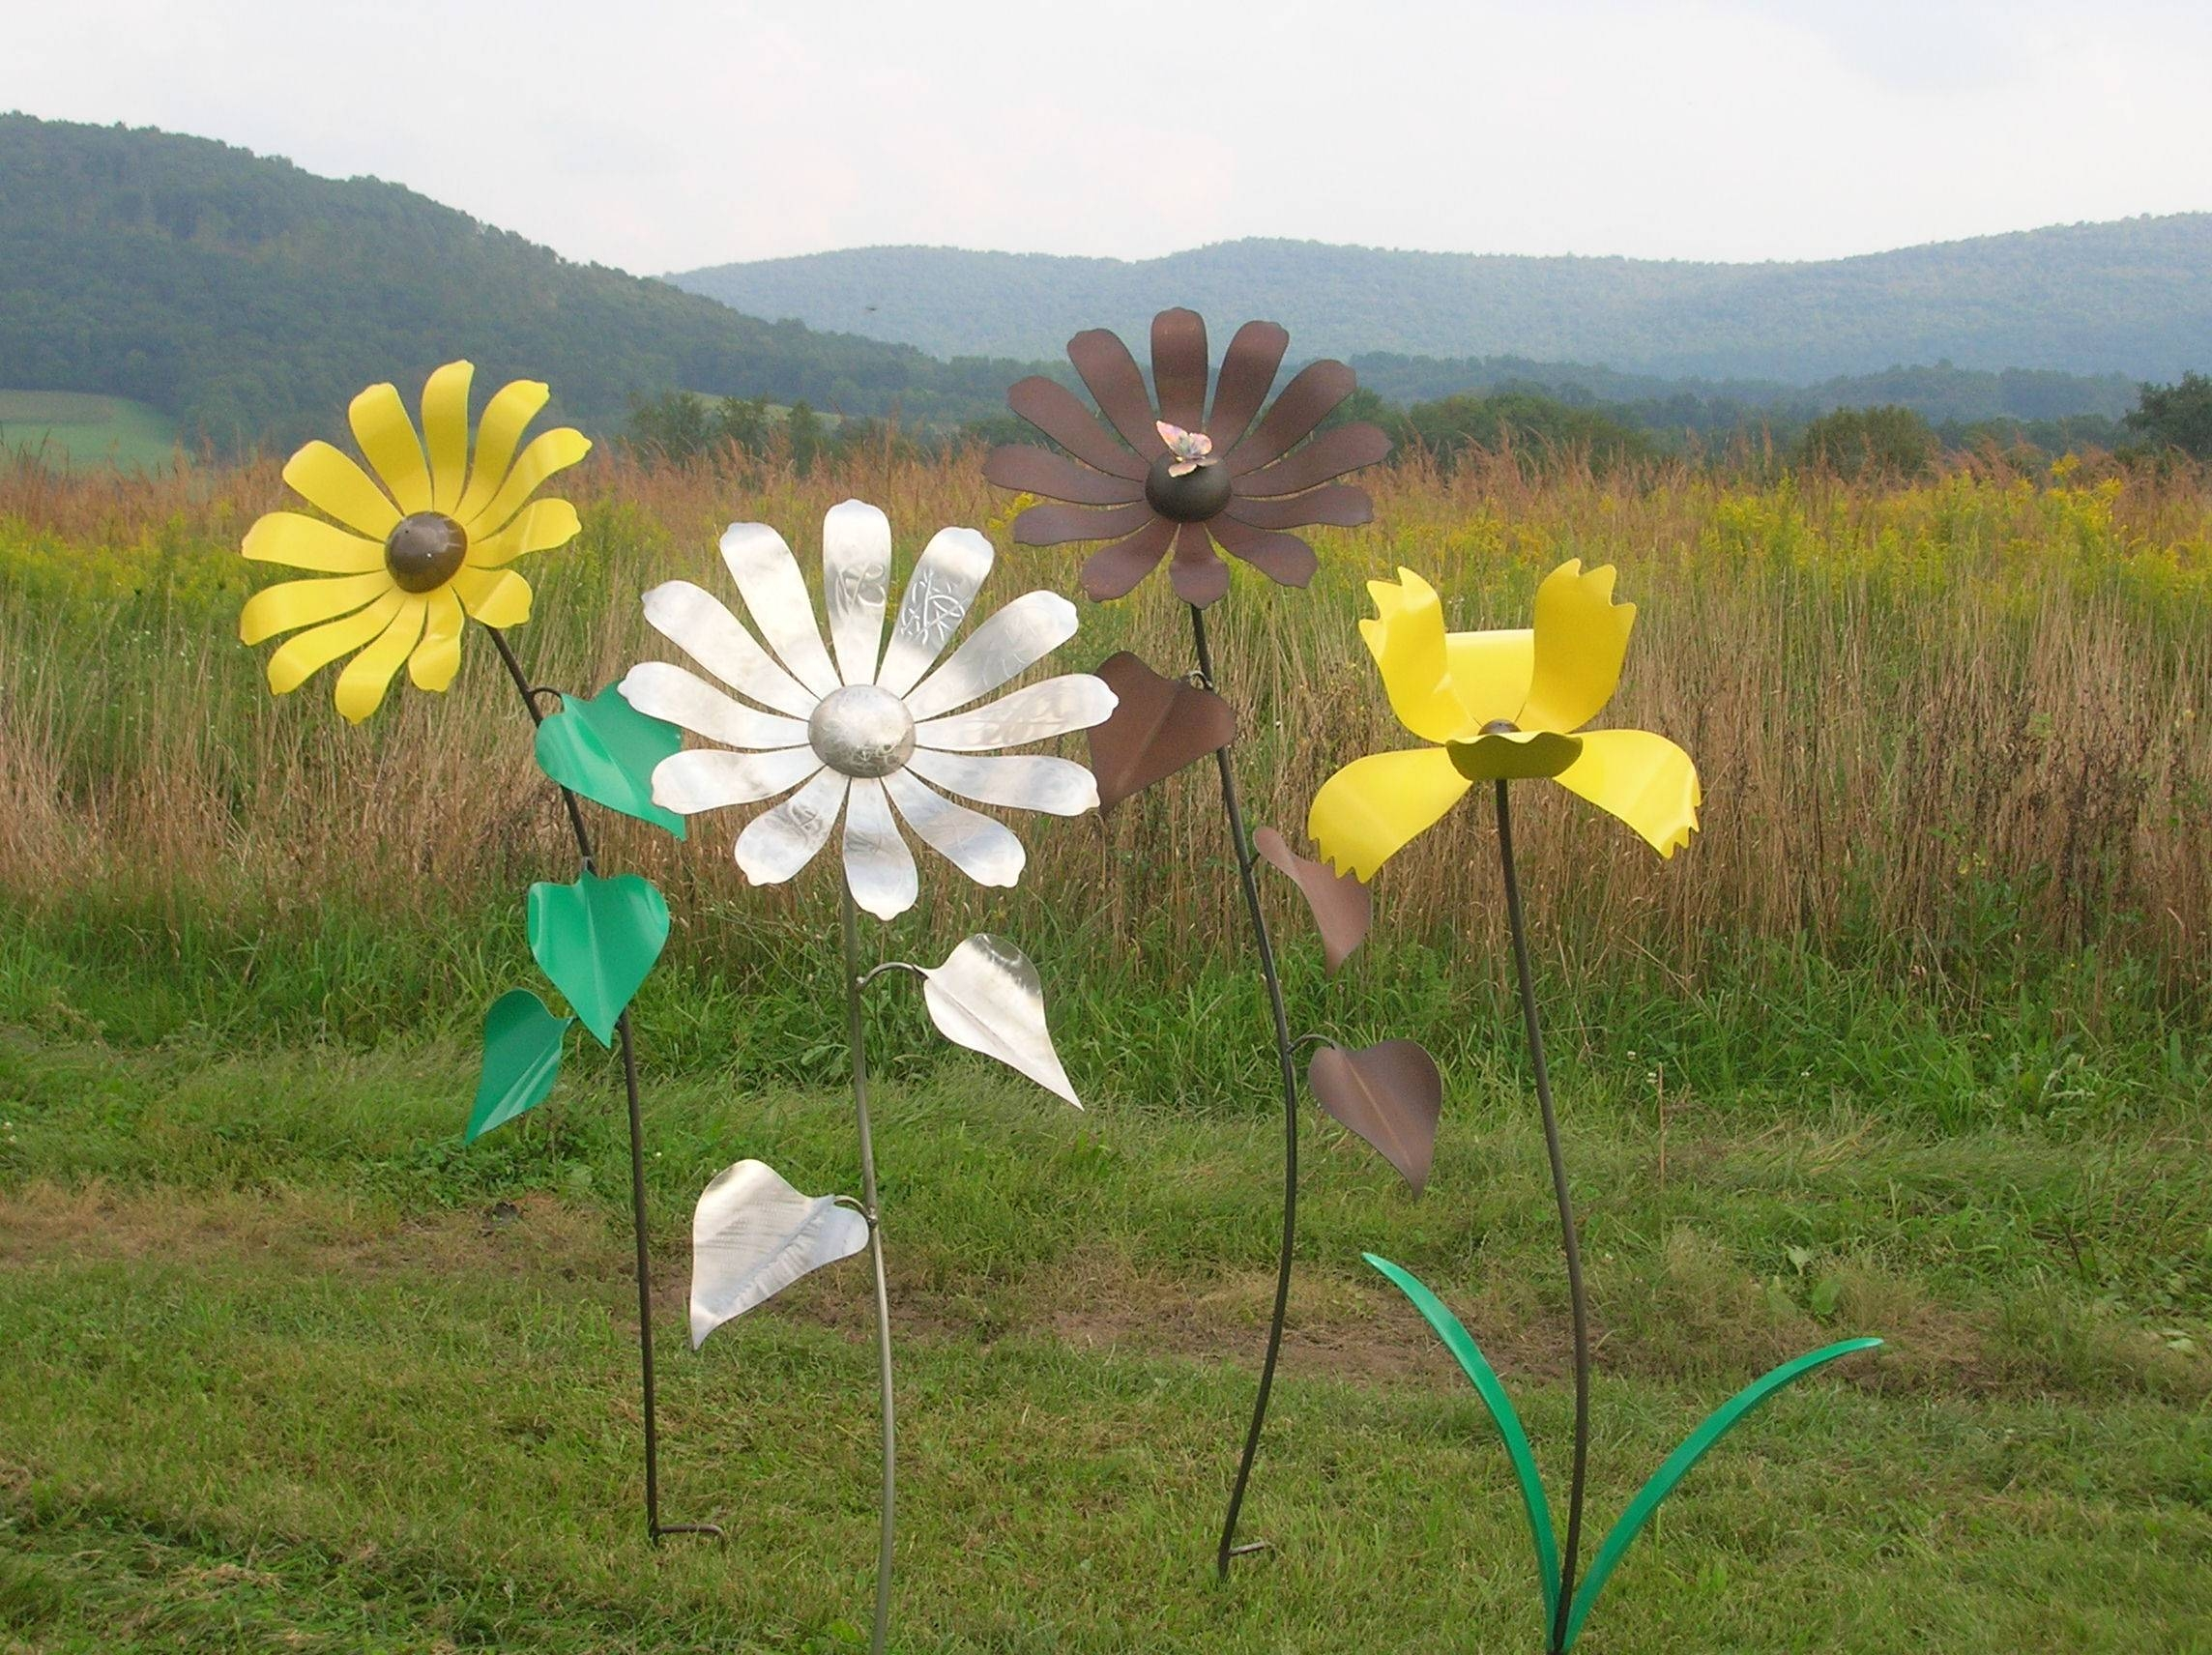 Giant Sunflowers | Shull's Metal Fab Within Recent Metal Sunflower Yard Art (View 10 of 26)